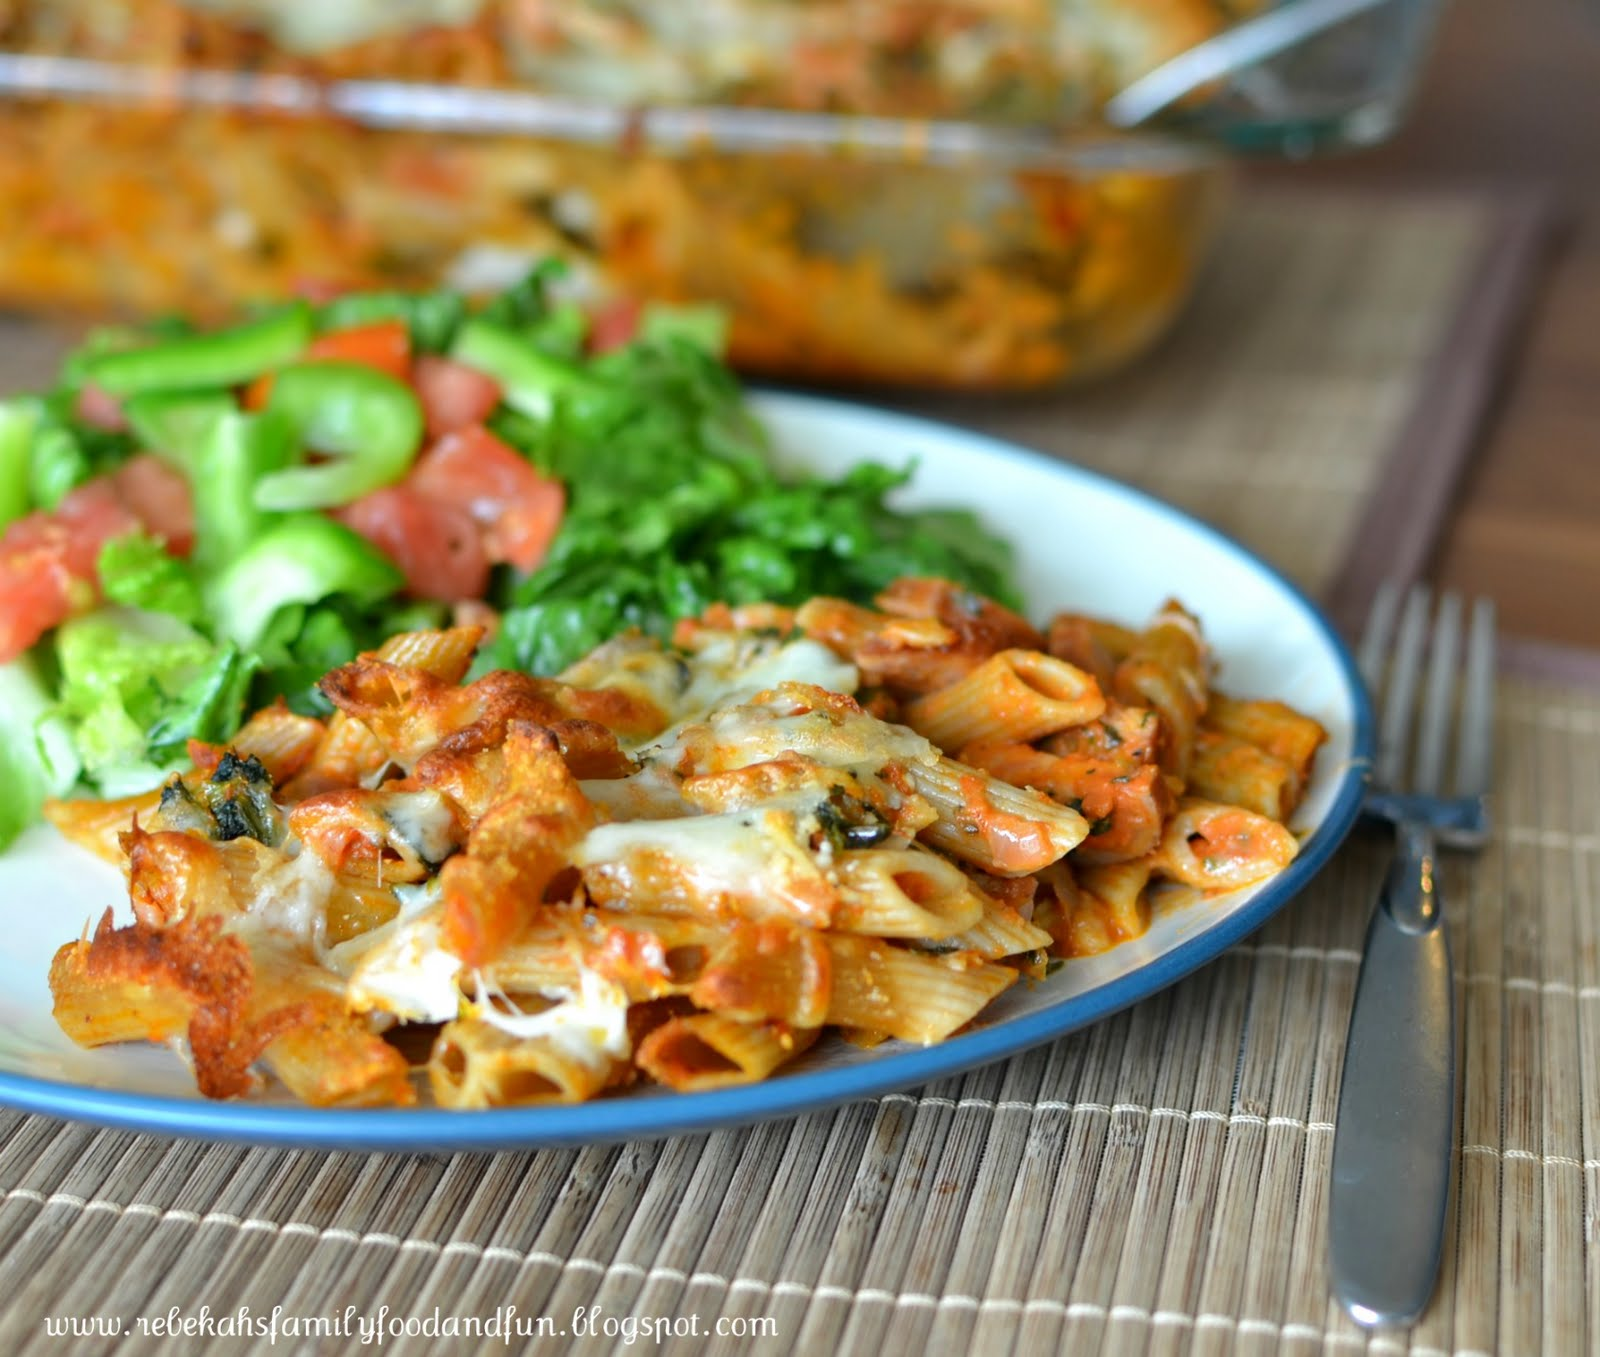 Family, Food, and Fun: Baked Pasta with Chicken Sausage